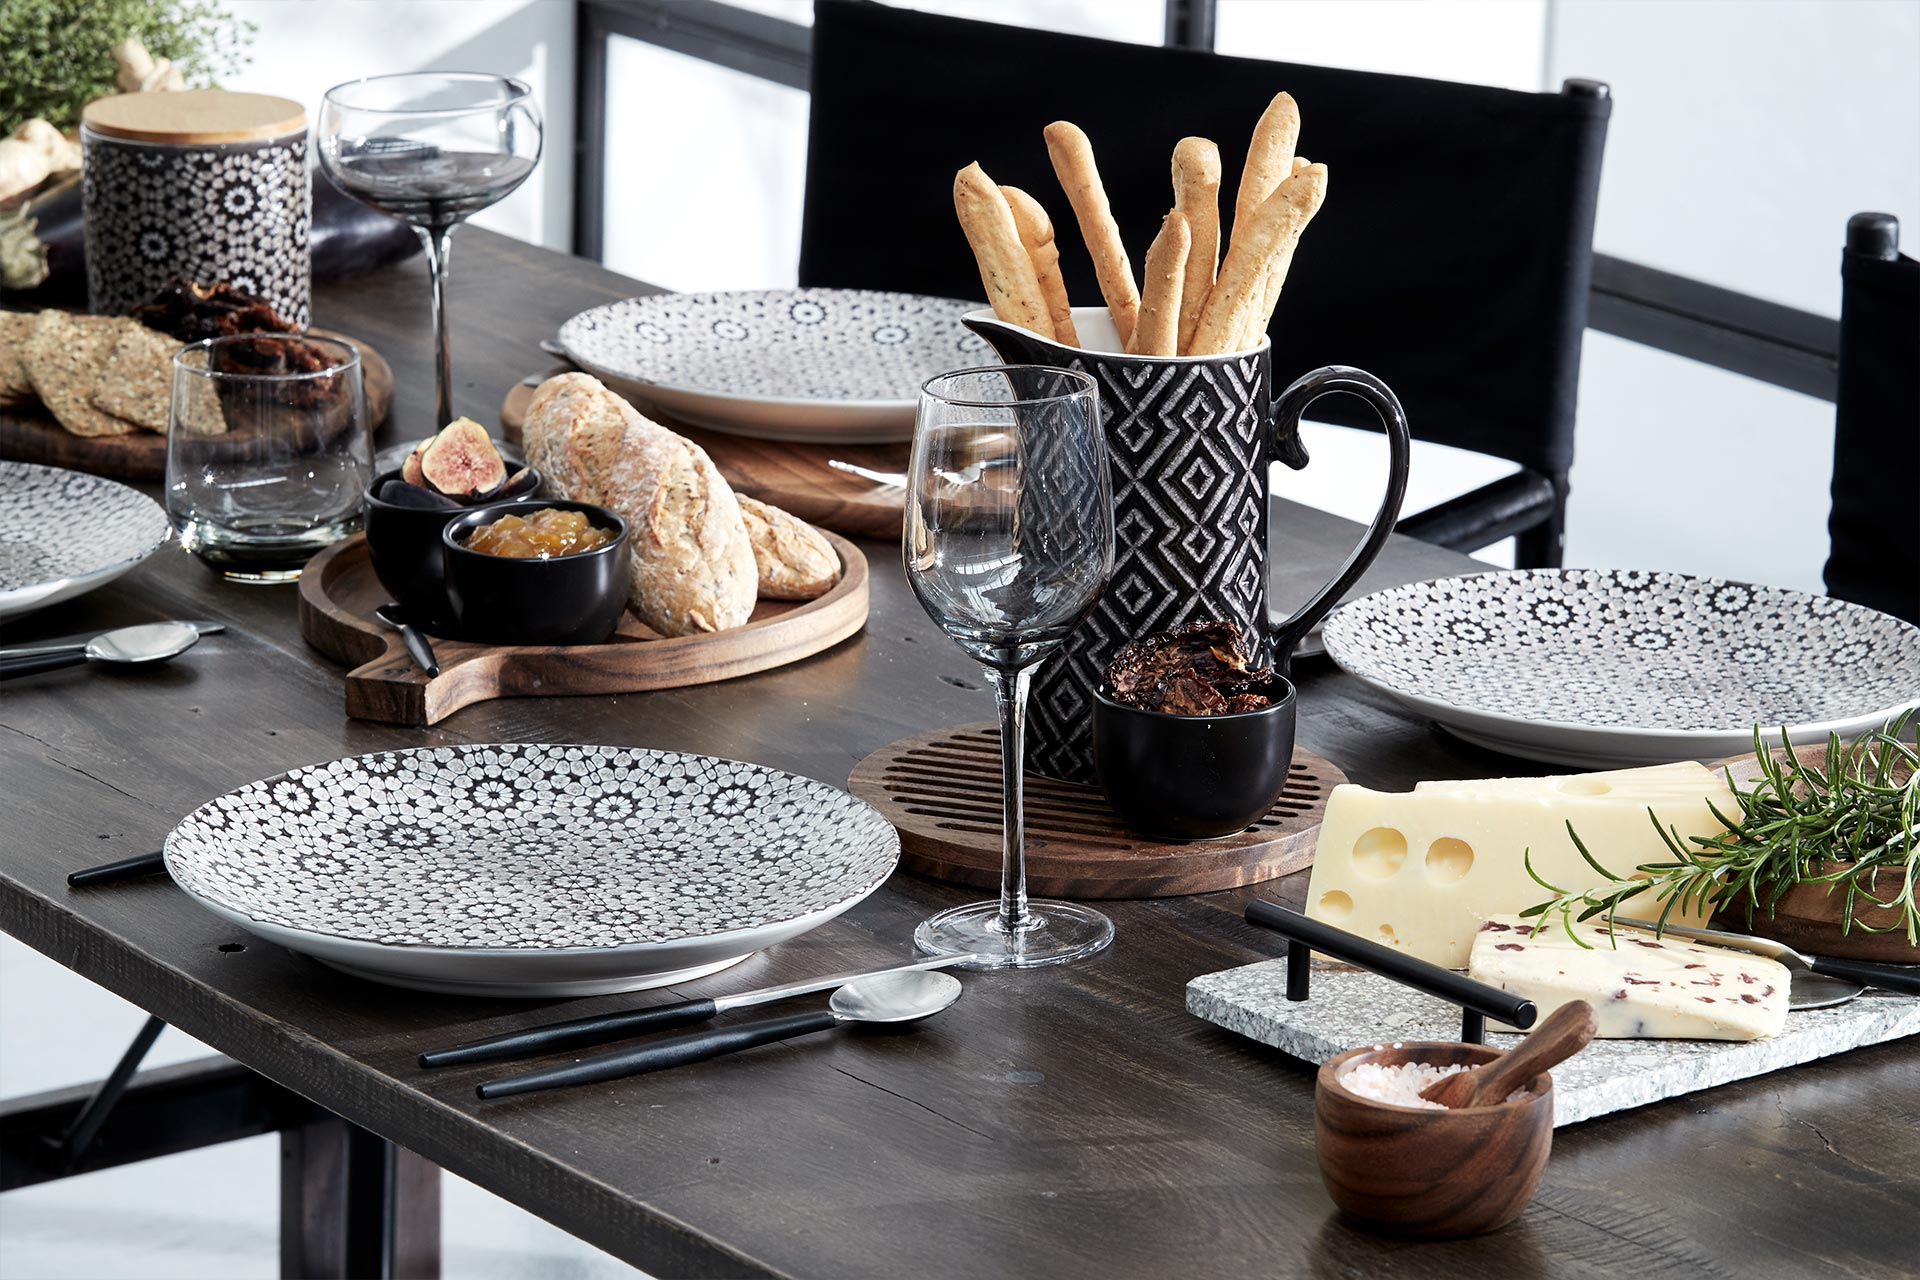 Classic tableware setting with plates, glasses, jugs chopping boards